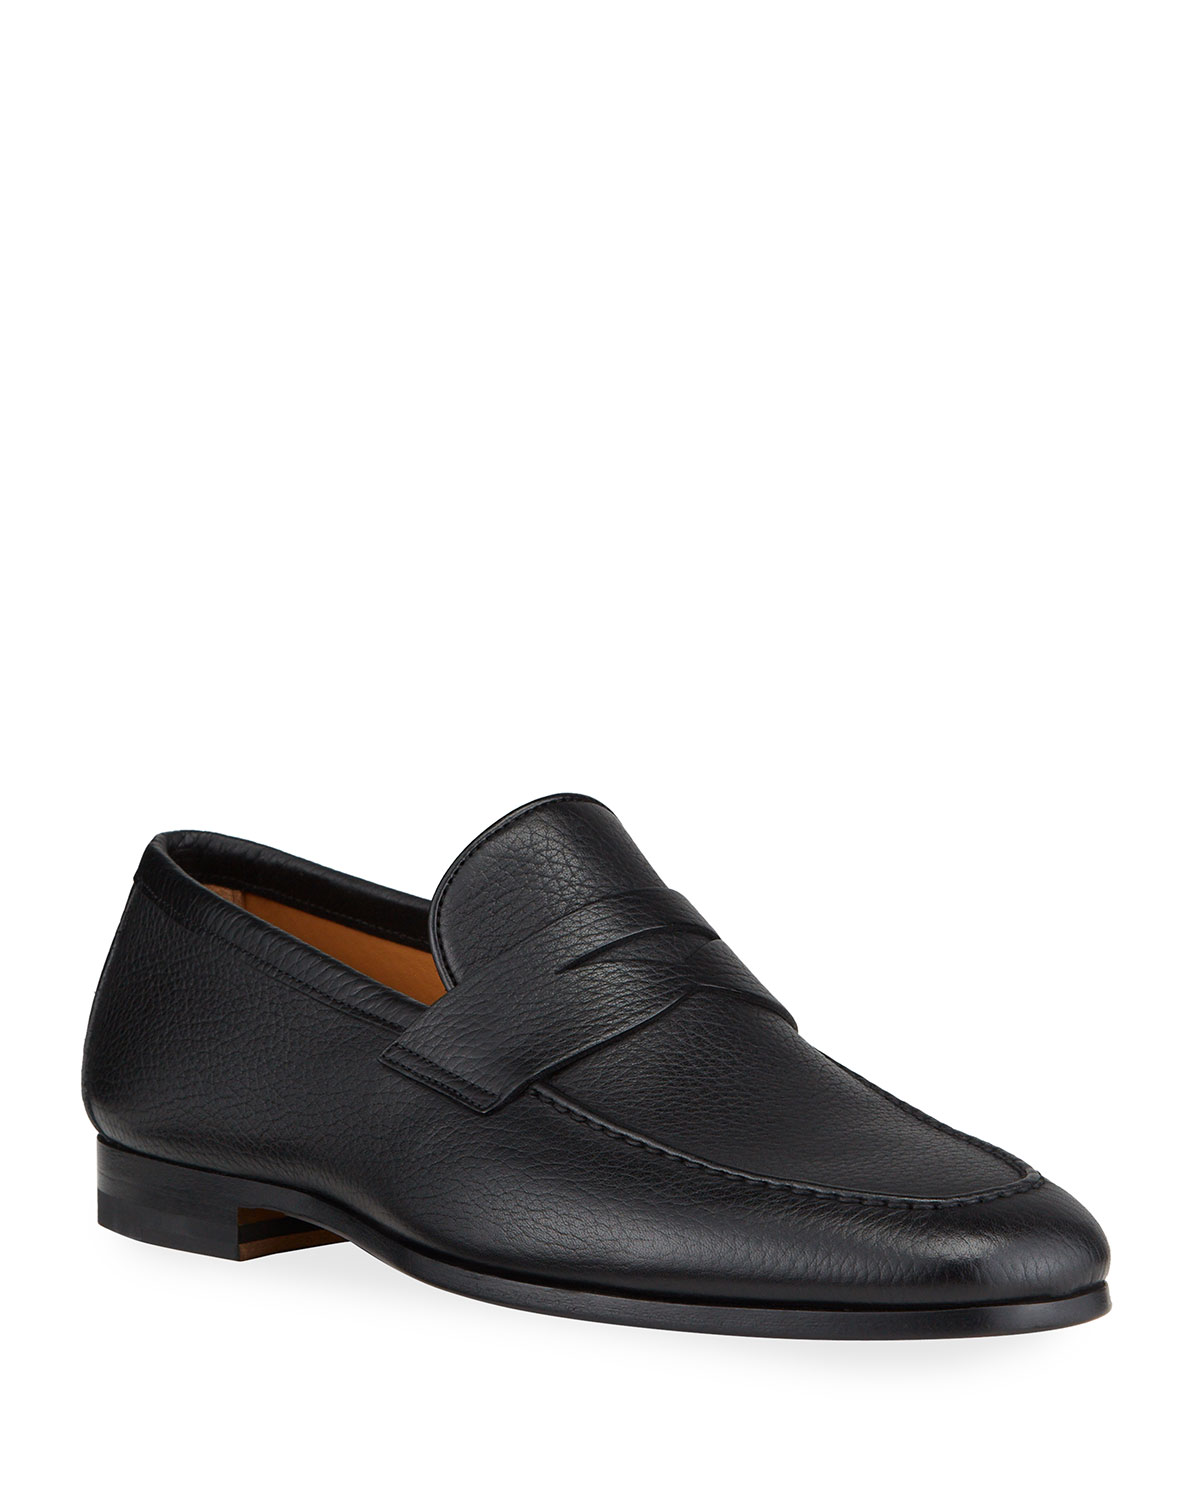 Magnanni for Neiman Marcus Men's Super Flex Leather Penny Loafers